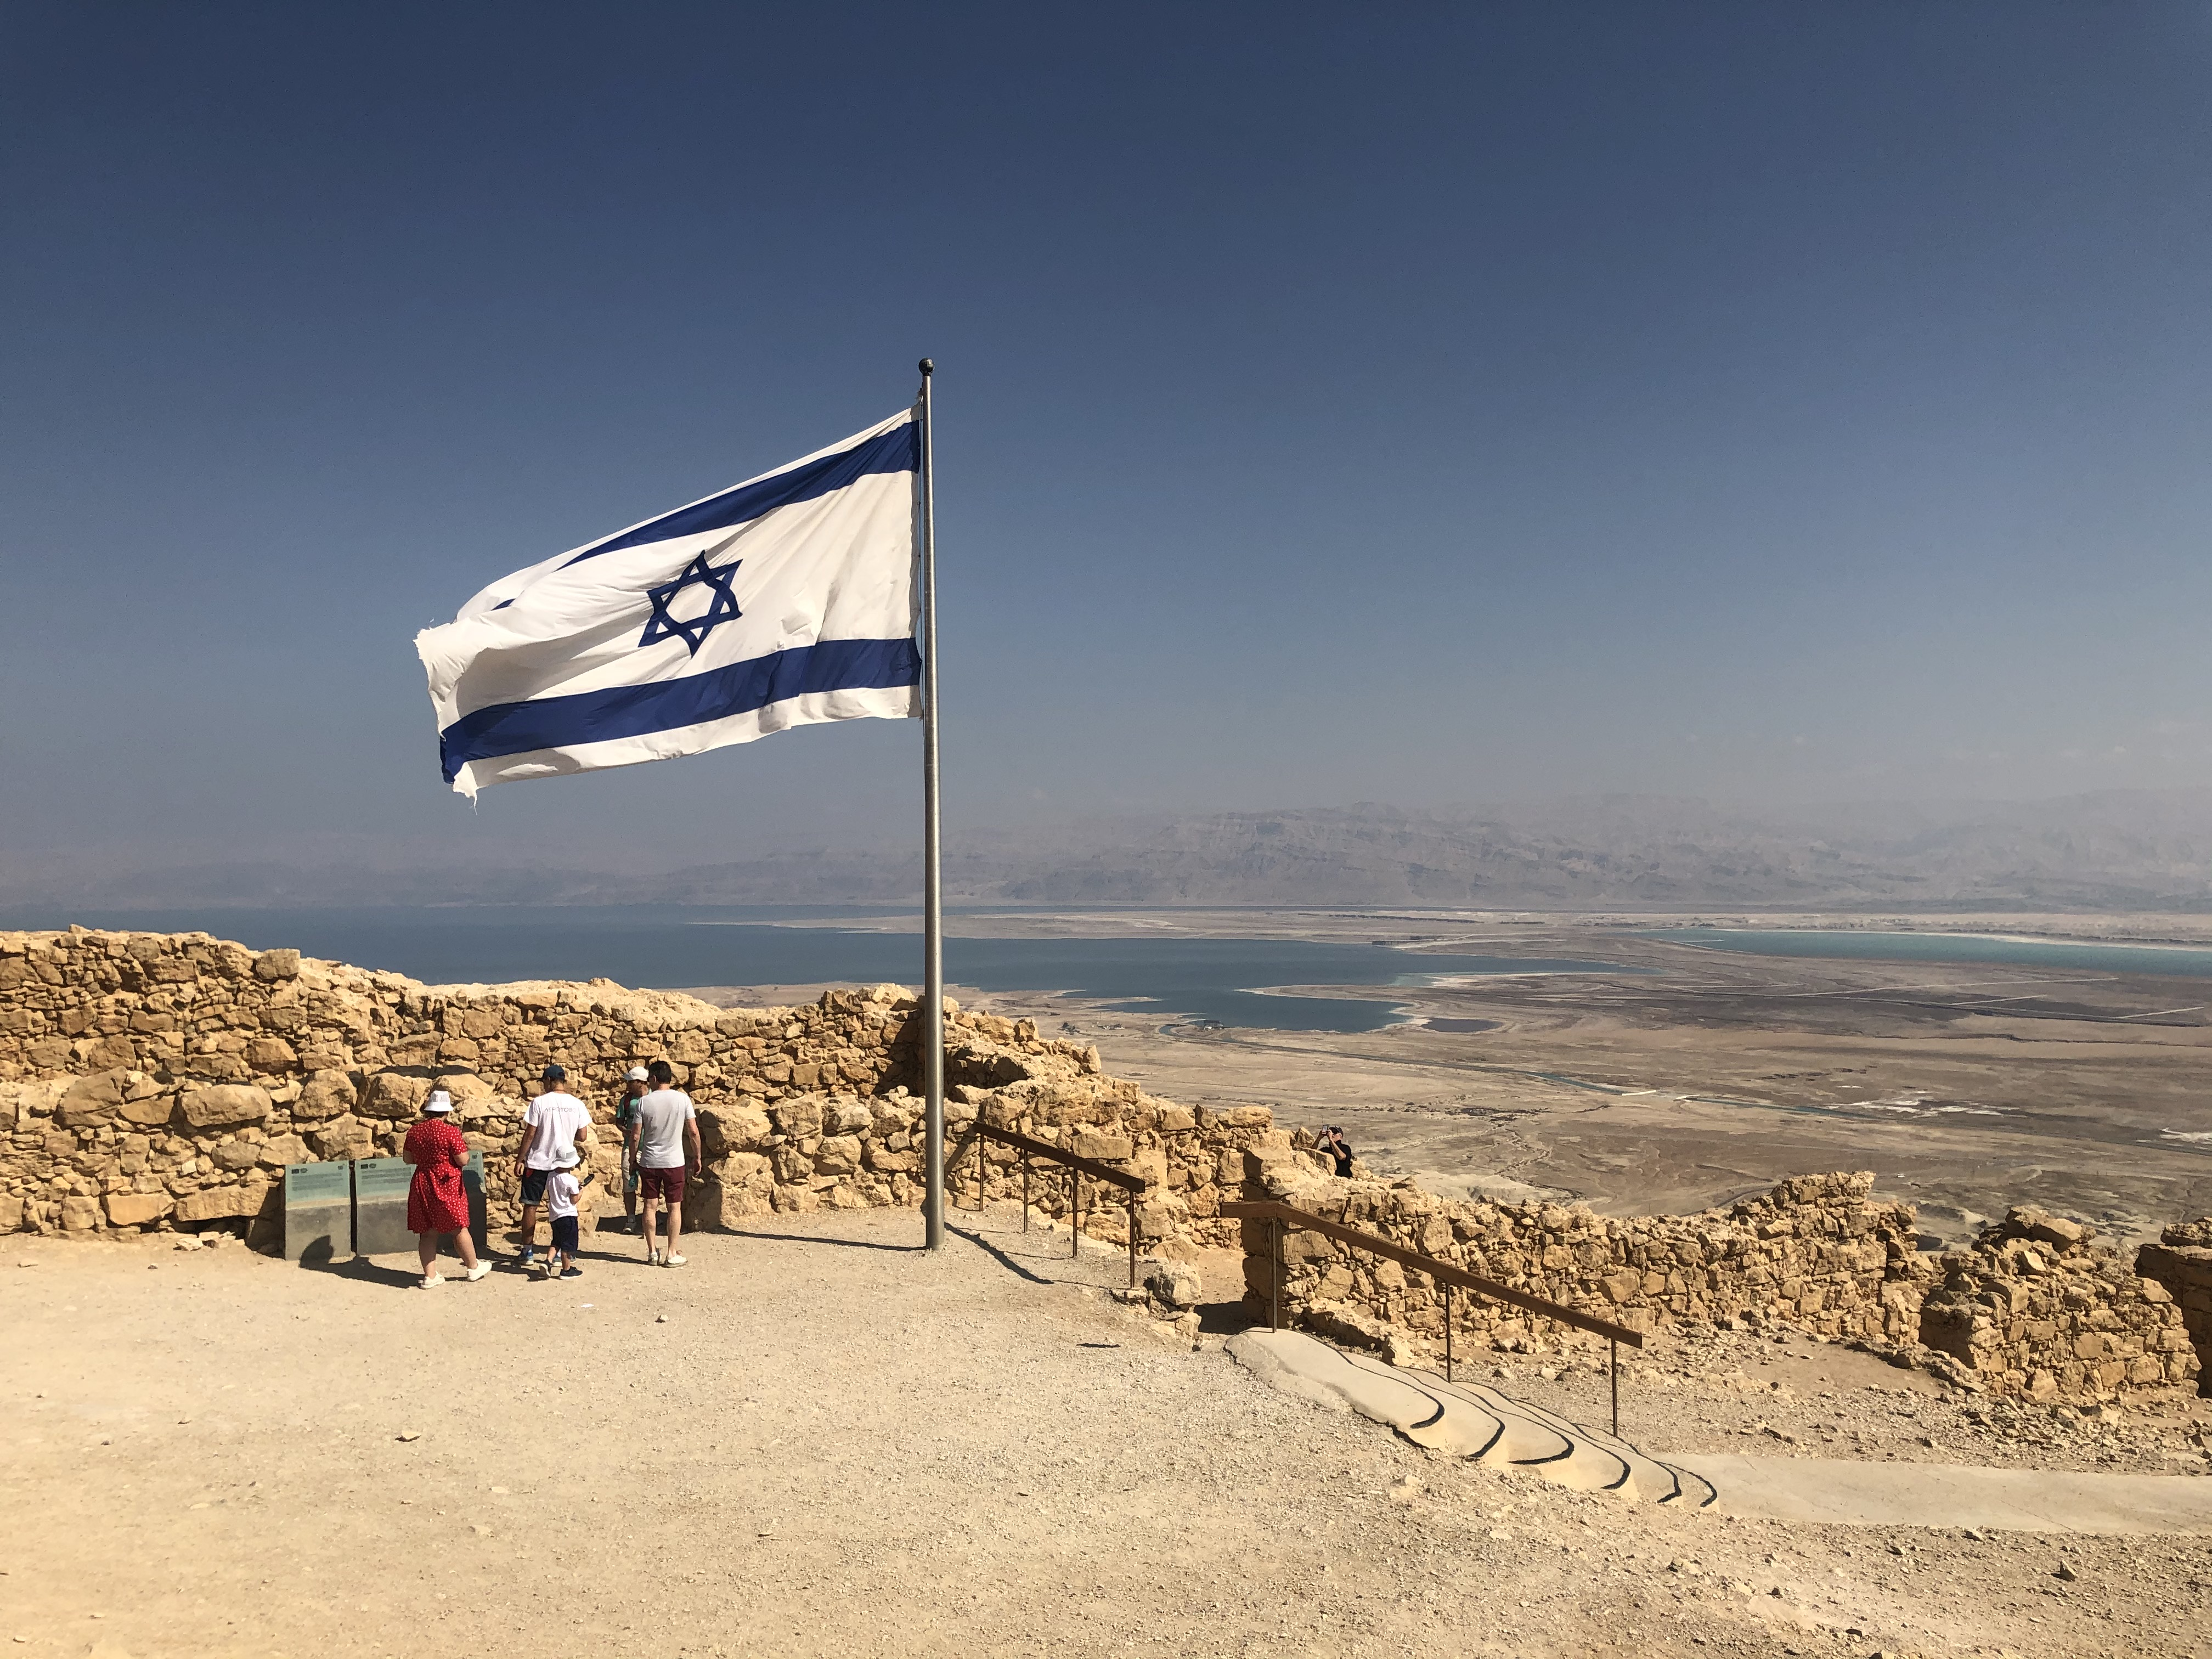 I'm back from Israel. Nice place and amazing Dead Sea.